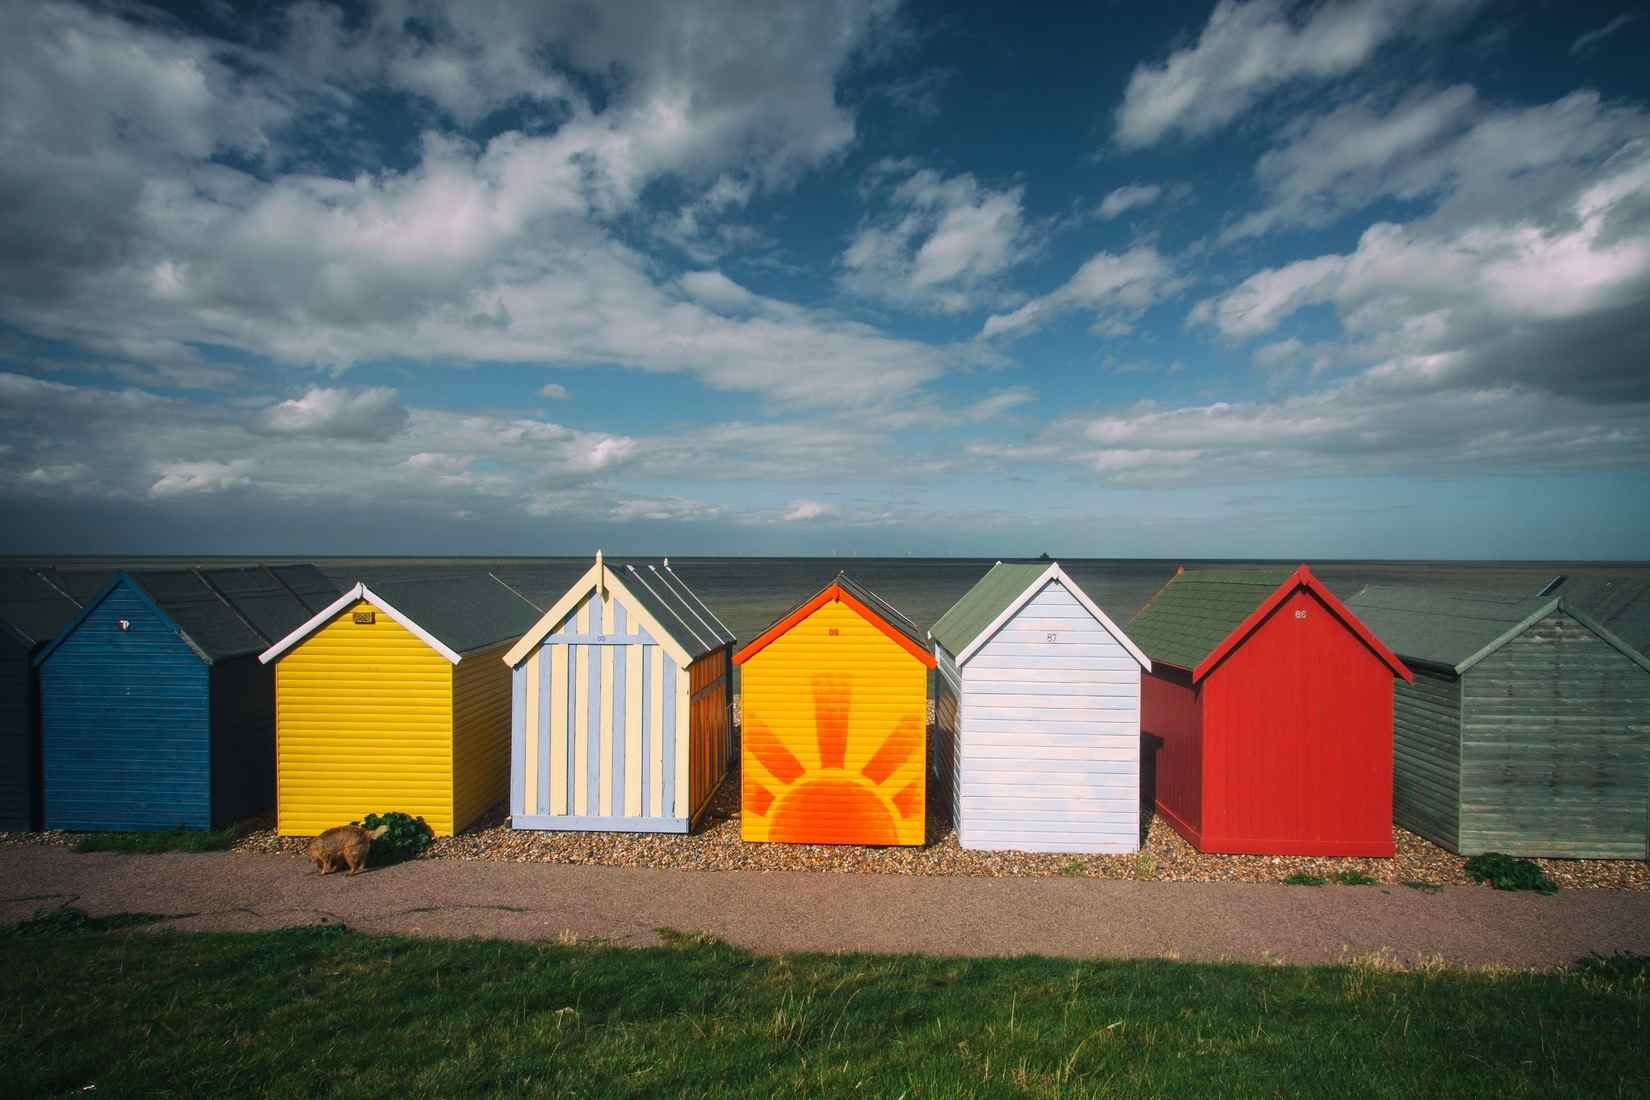 Seven small fishing huts painted in colourful ways representing different types of therapy